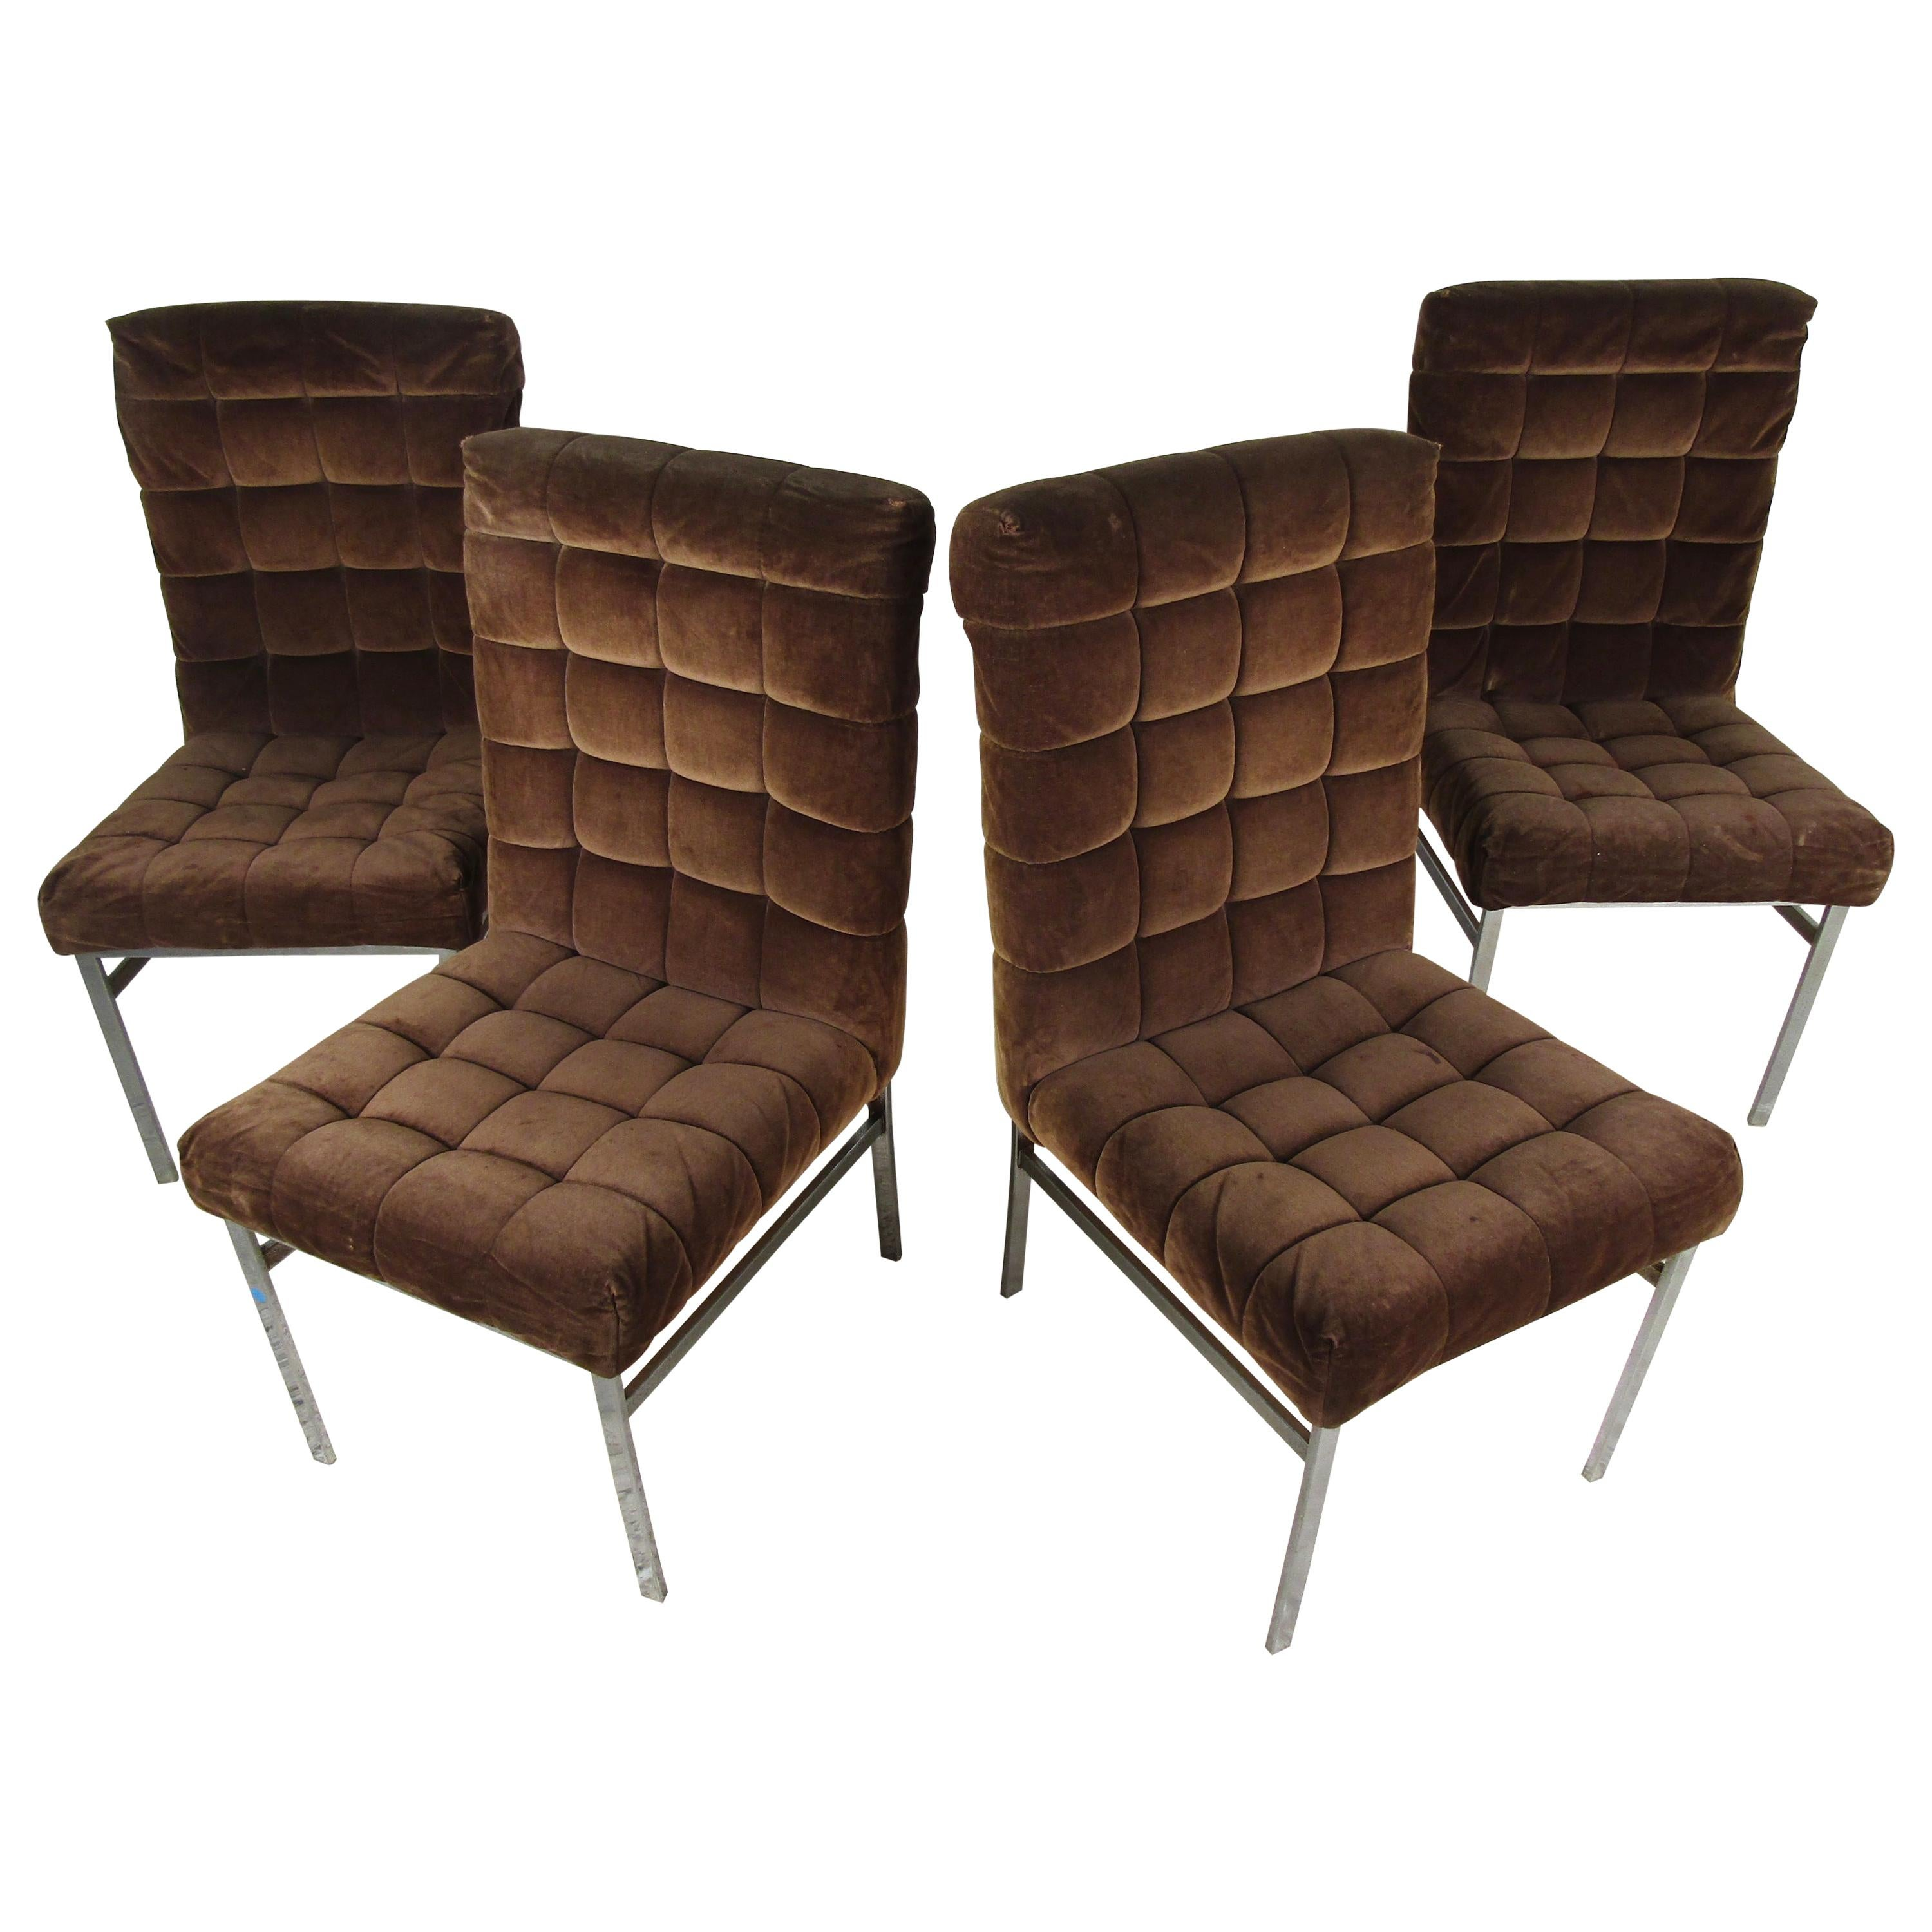 Set of 4 Midcentury Dining Chairs with Tufted Upholstery